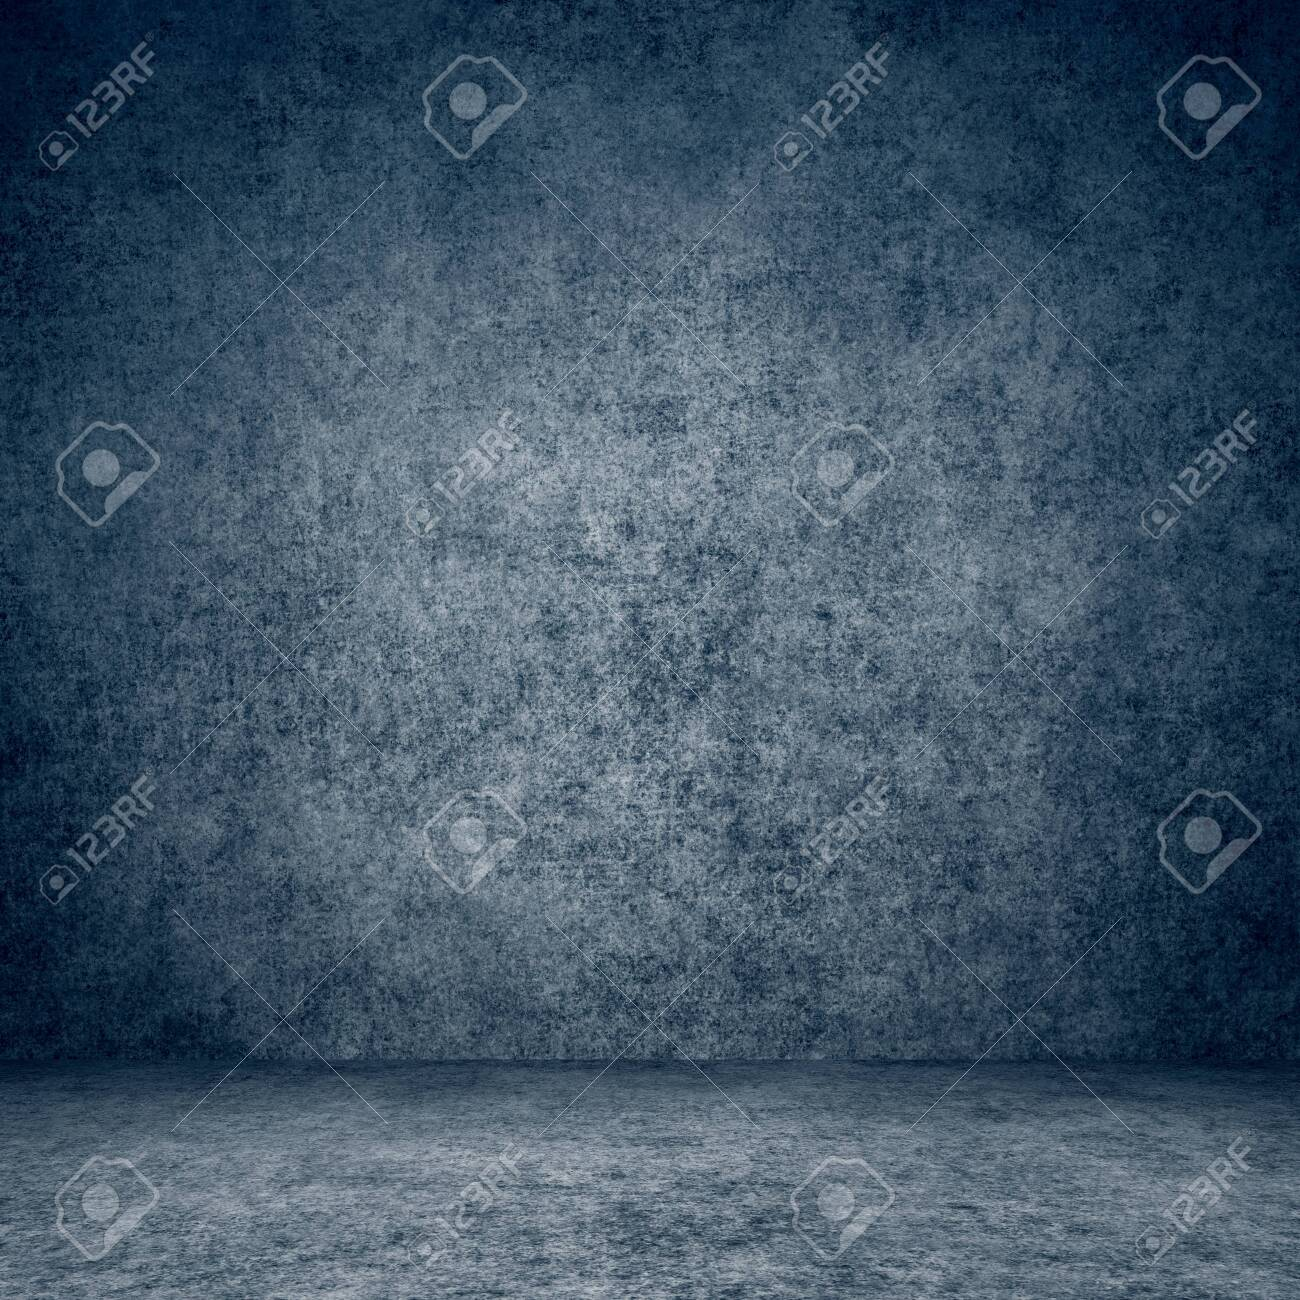 Designed grunge texture. Wall and floor interior background. - 136781905